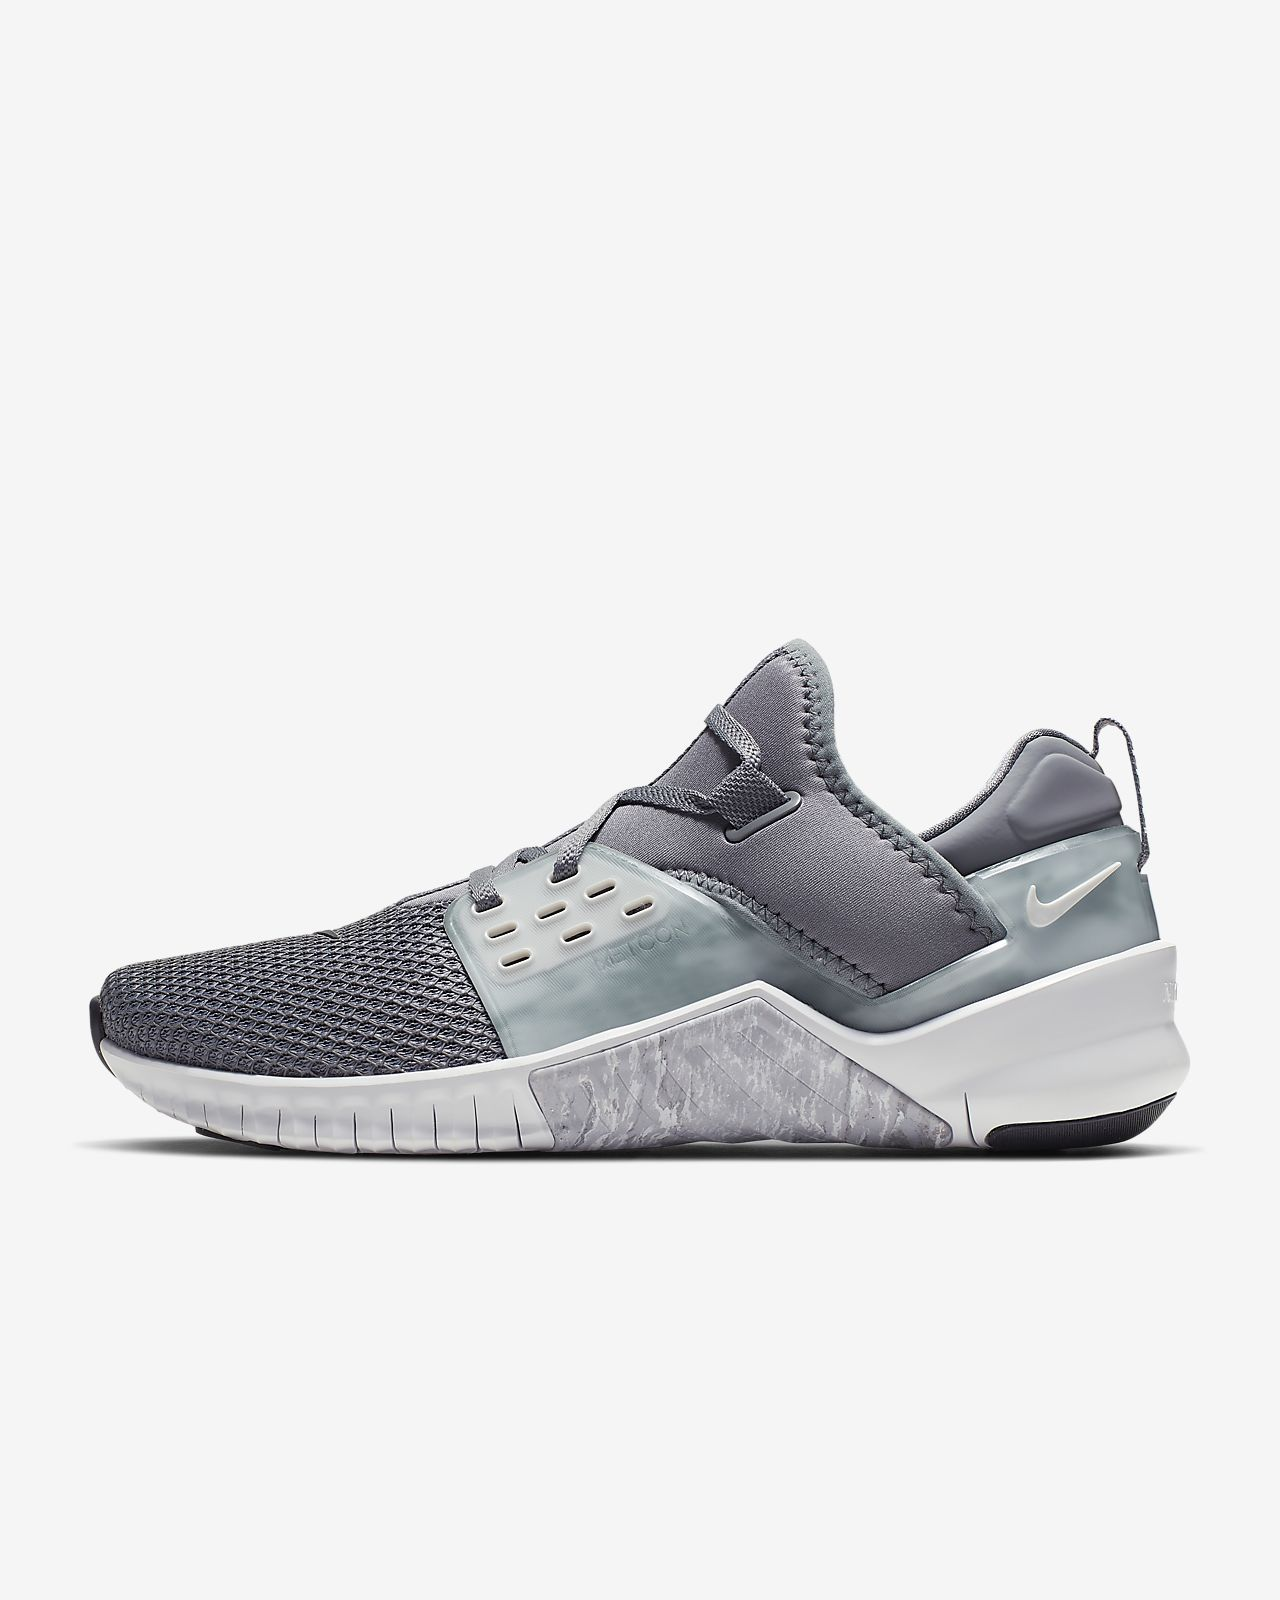 promo code 6570d 9aa11 ... Chaussure de training Nike Free X Metcon 2 pour Homme